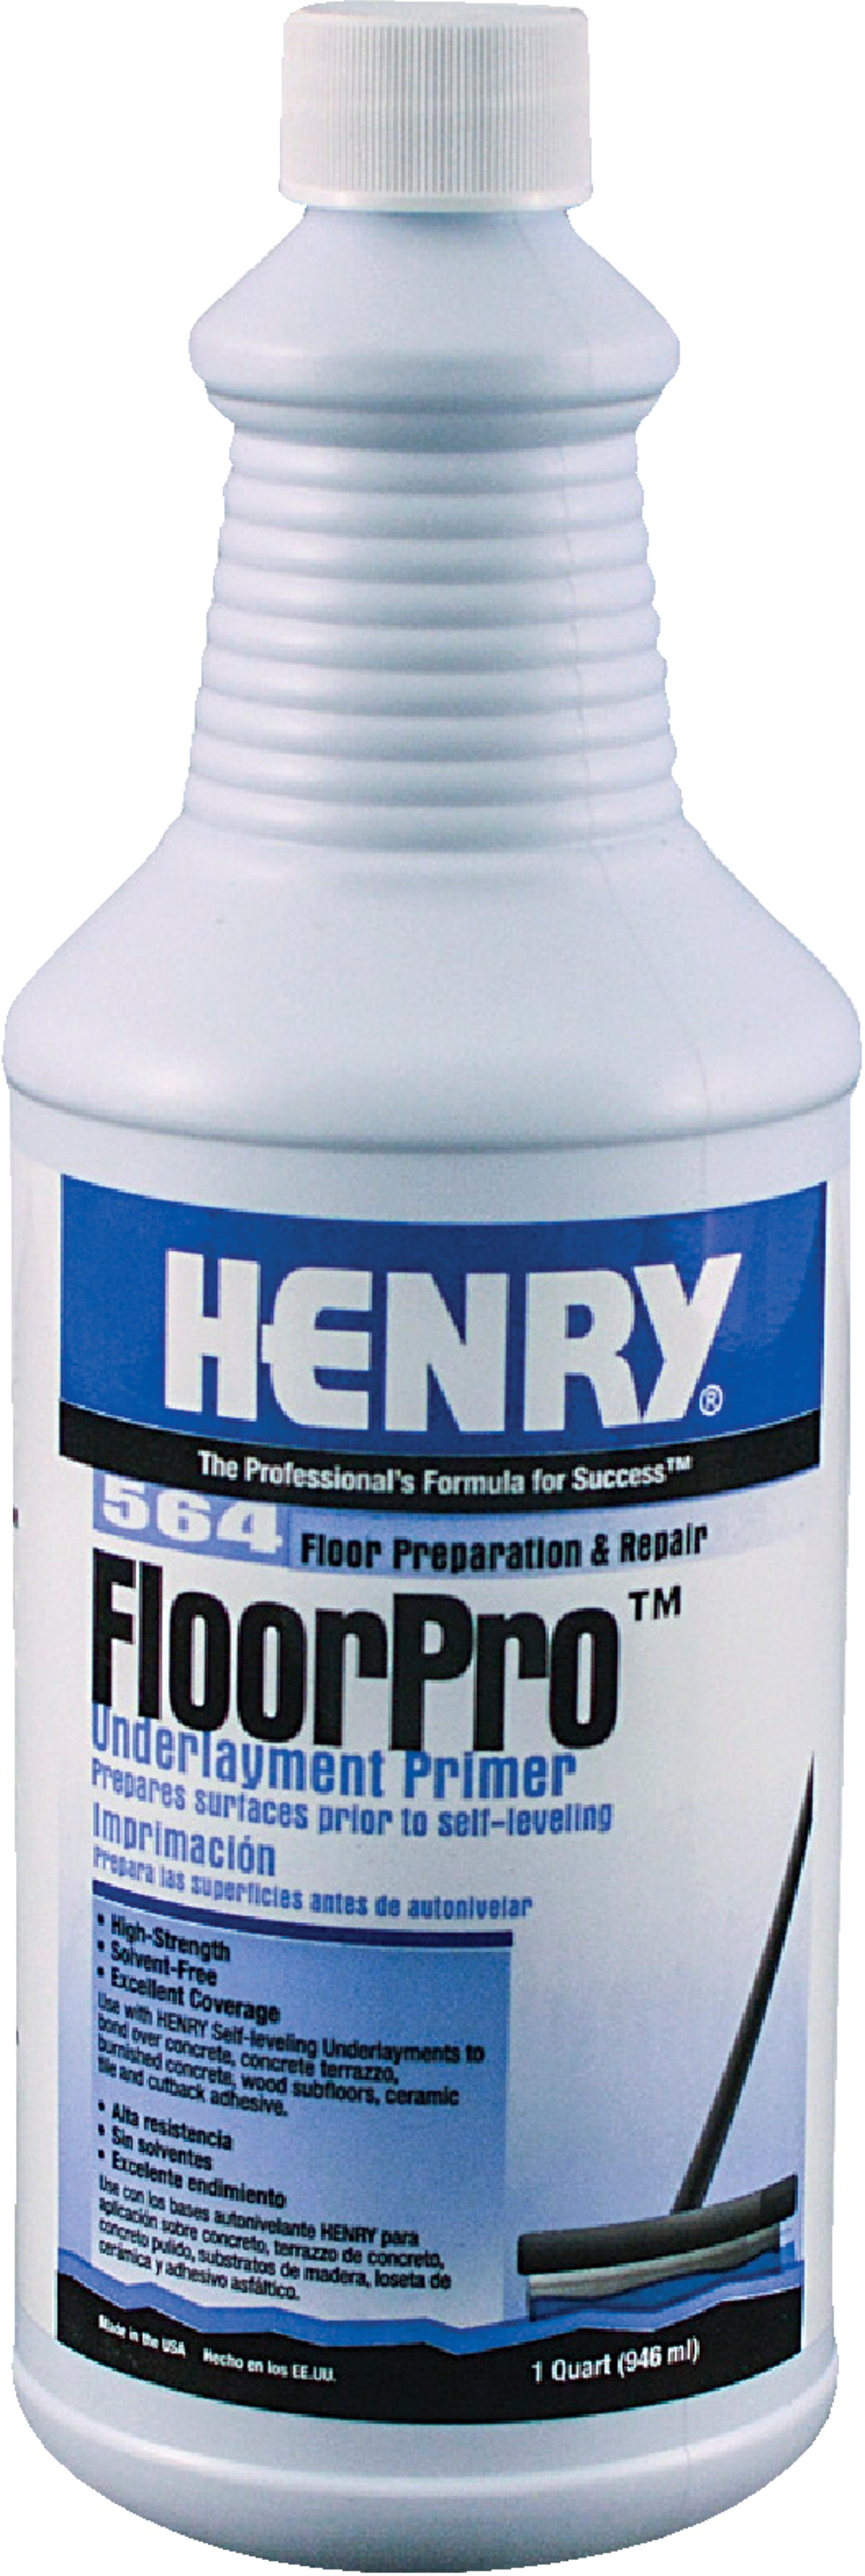 Add To ListClick to add item Rust-Oleum Oil-Based Rusty Metal Primer to your list. Buy Henry 564 Floorpro Underlayment Primer Qt